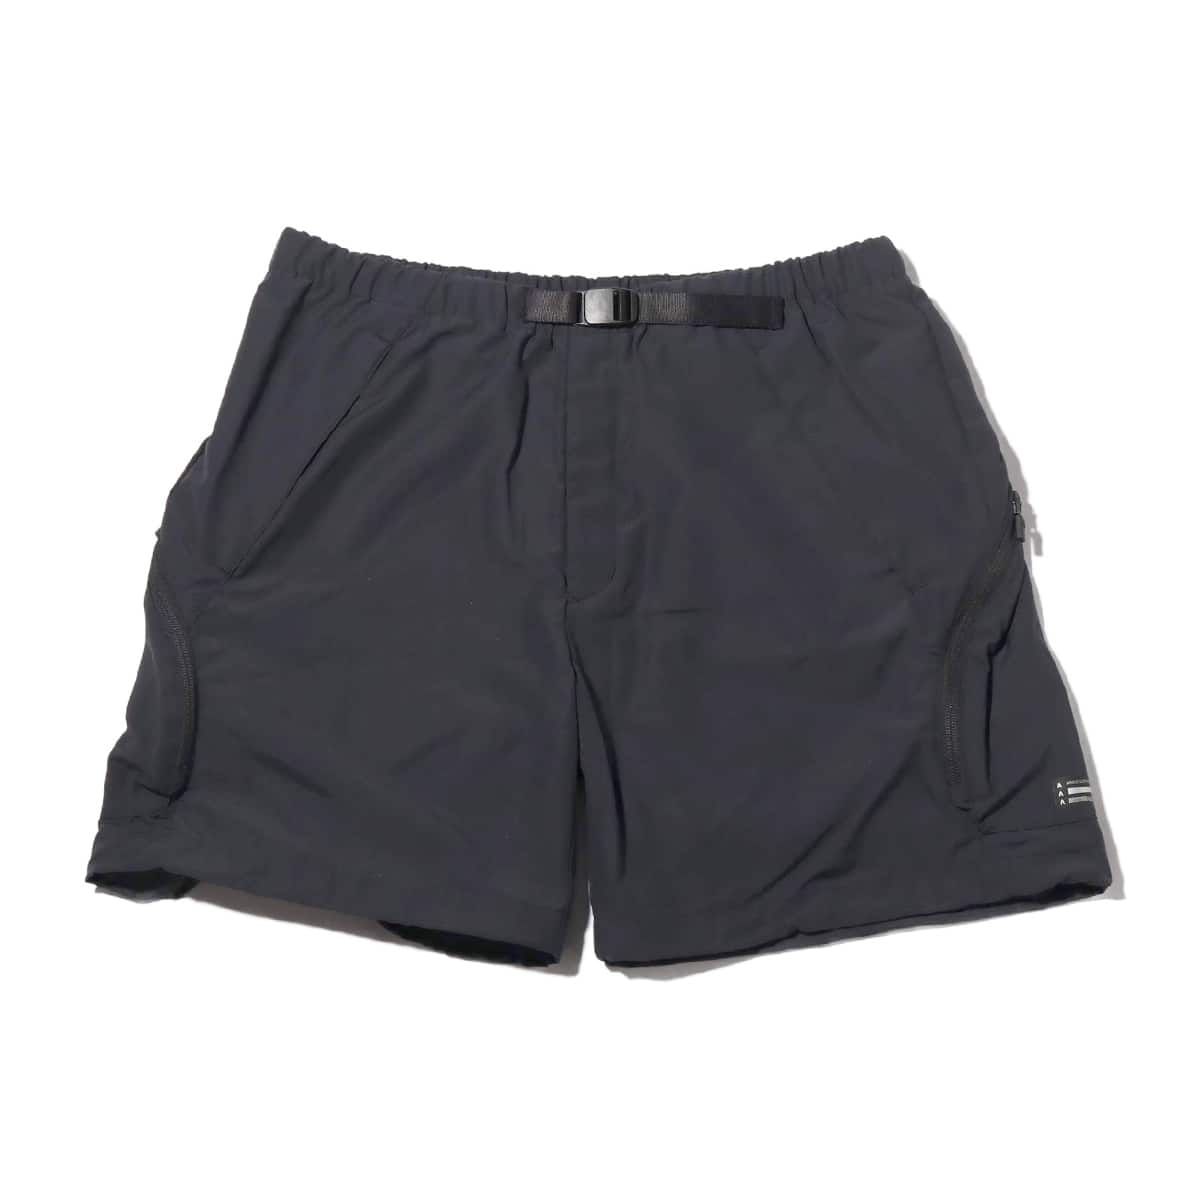 DESCENTE ddd X ATMOS LAB 6 POCKET SHORTS BLACK 19SP-I_photo_large